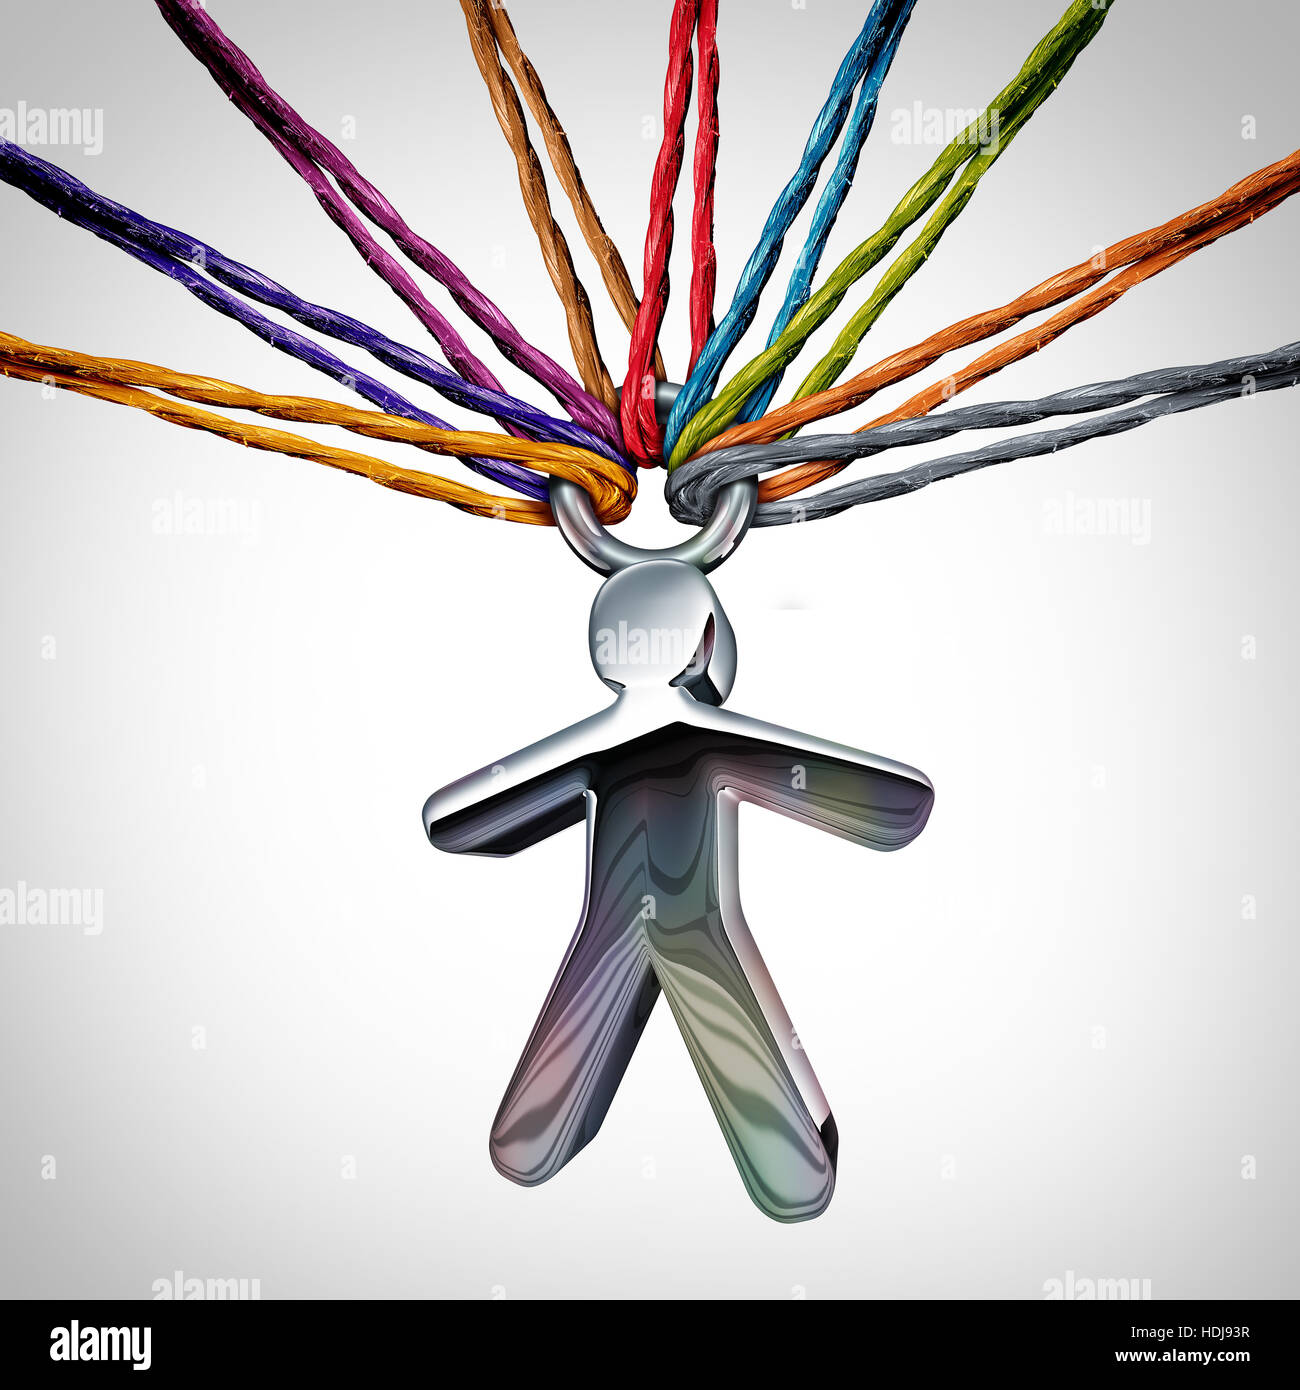 Community care concept as a person icon supported and held by a diverse group of ropes as a humanity and faith metaphor - Stock Image